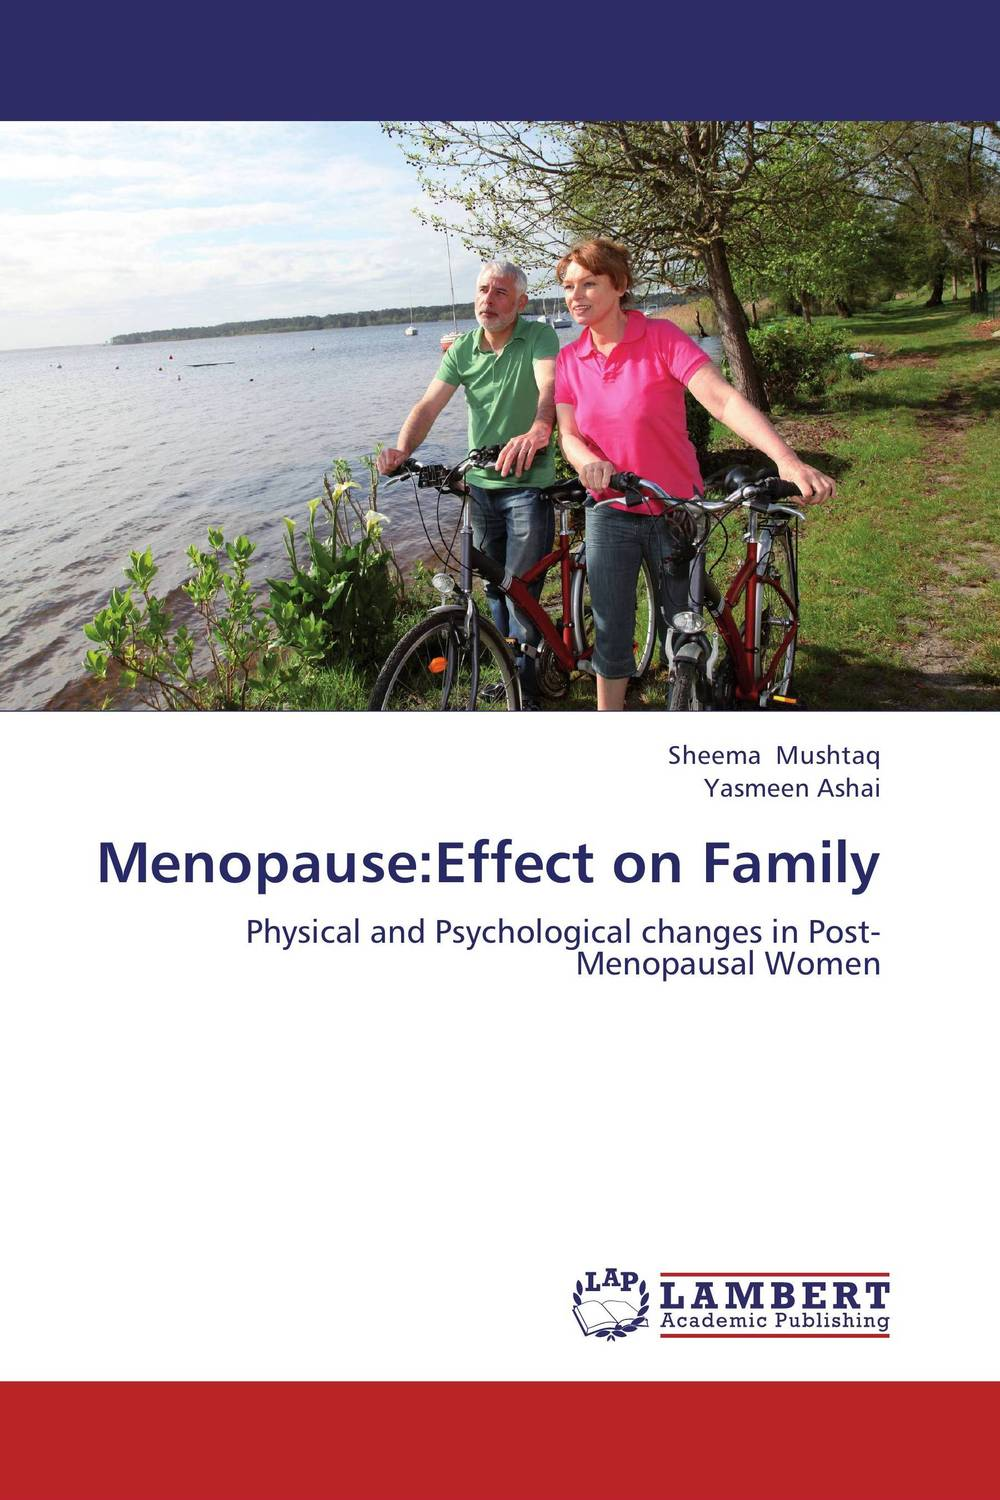 Menopause:Effect on Family midlife madness or menopause